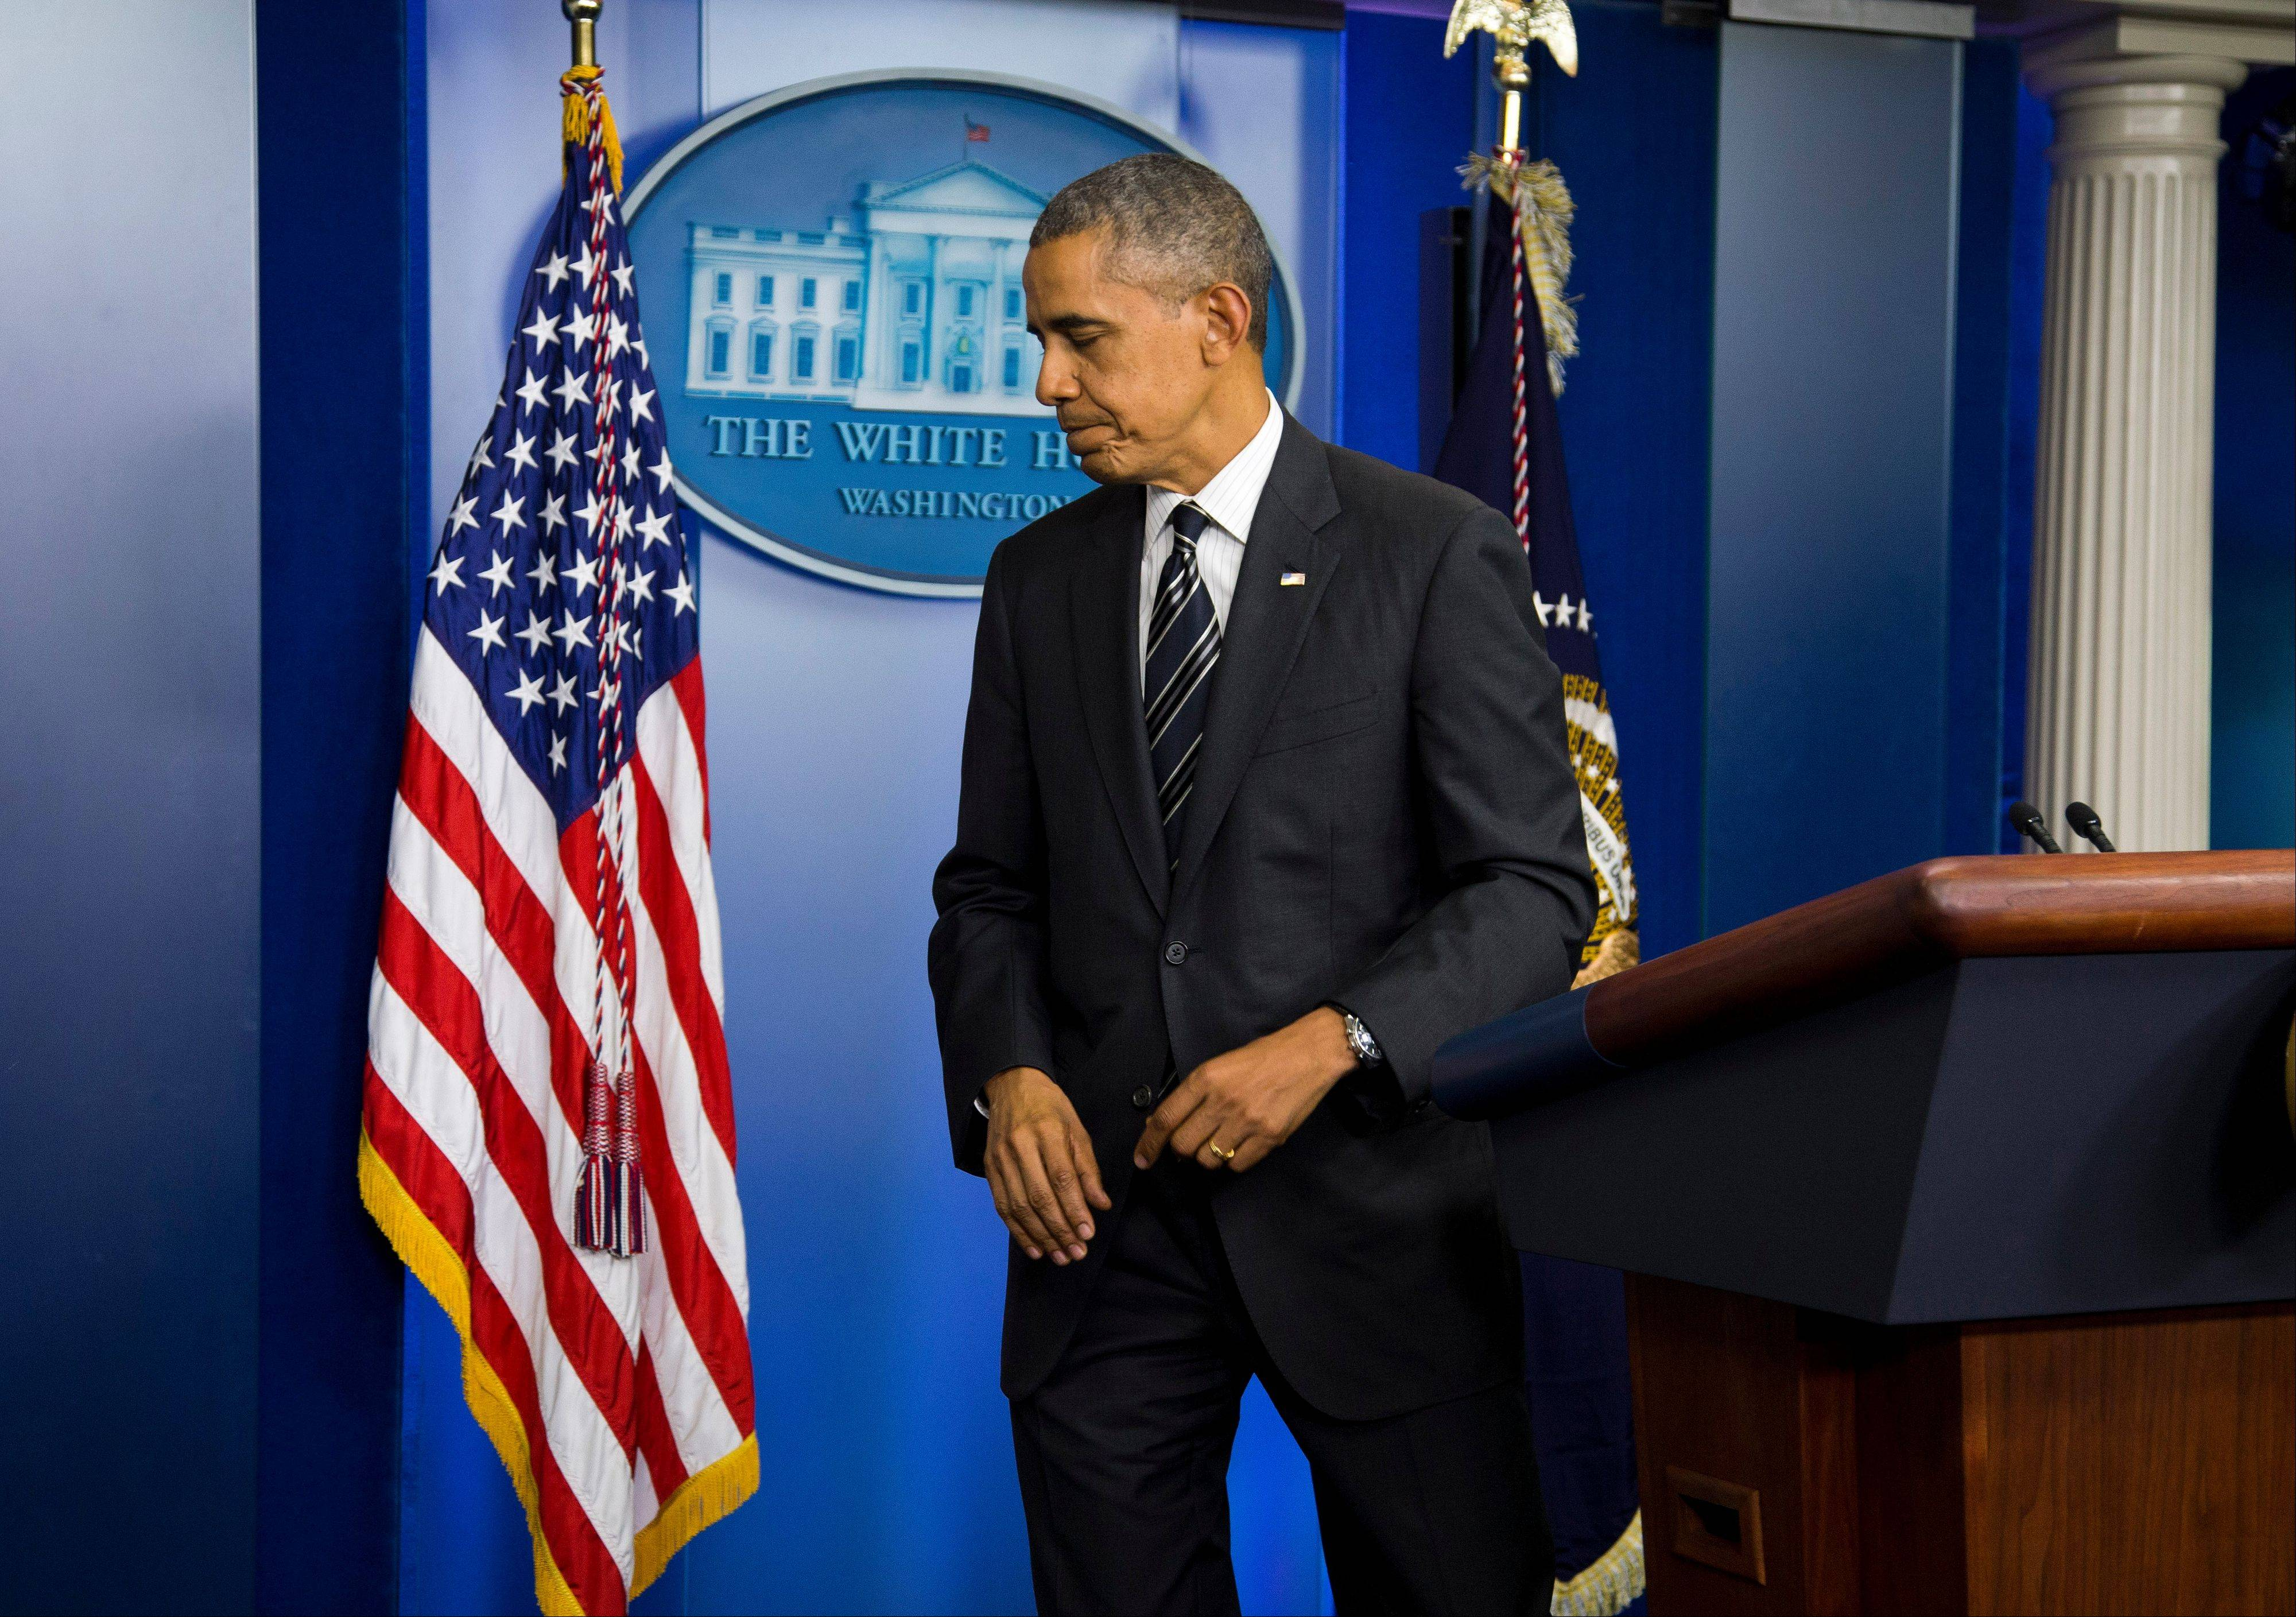 President Barack Obama leaves Friday after making a statement regarding the budget fight in Congress and foreign policy challenges, in the James Brady Press Briefing Room of the White House in Washington.